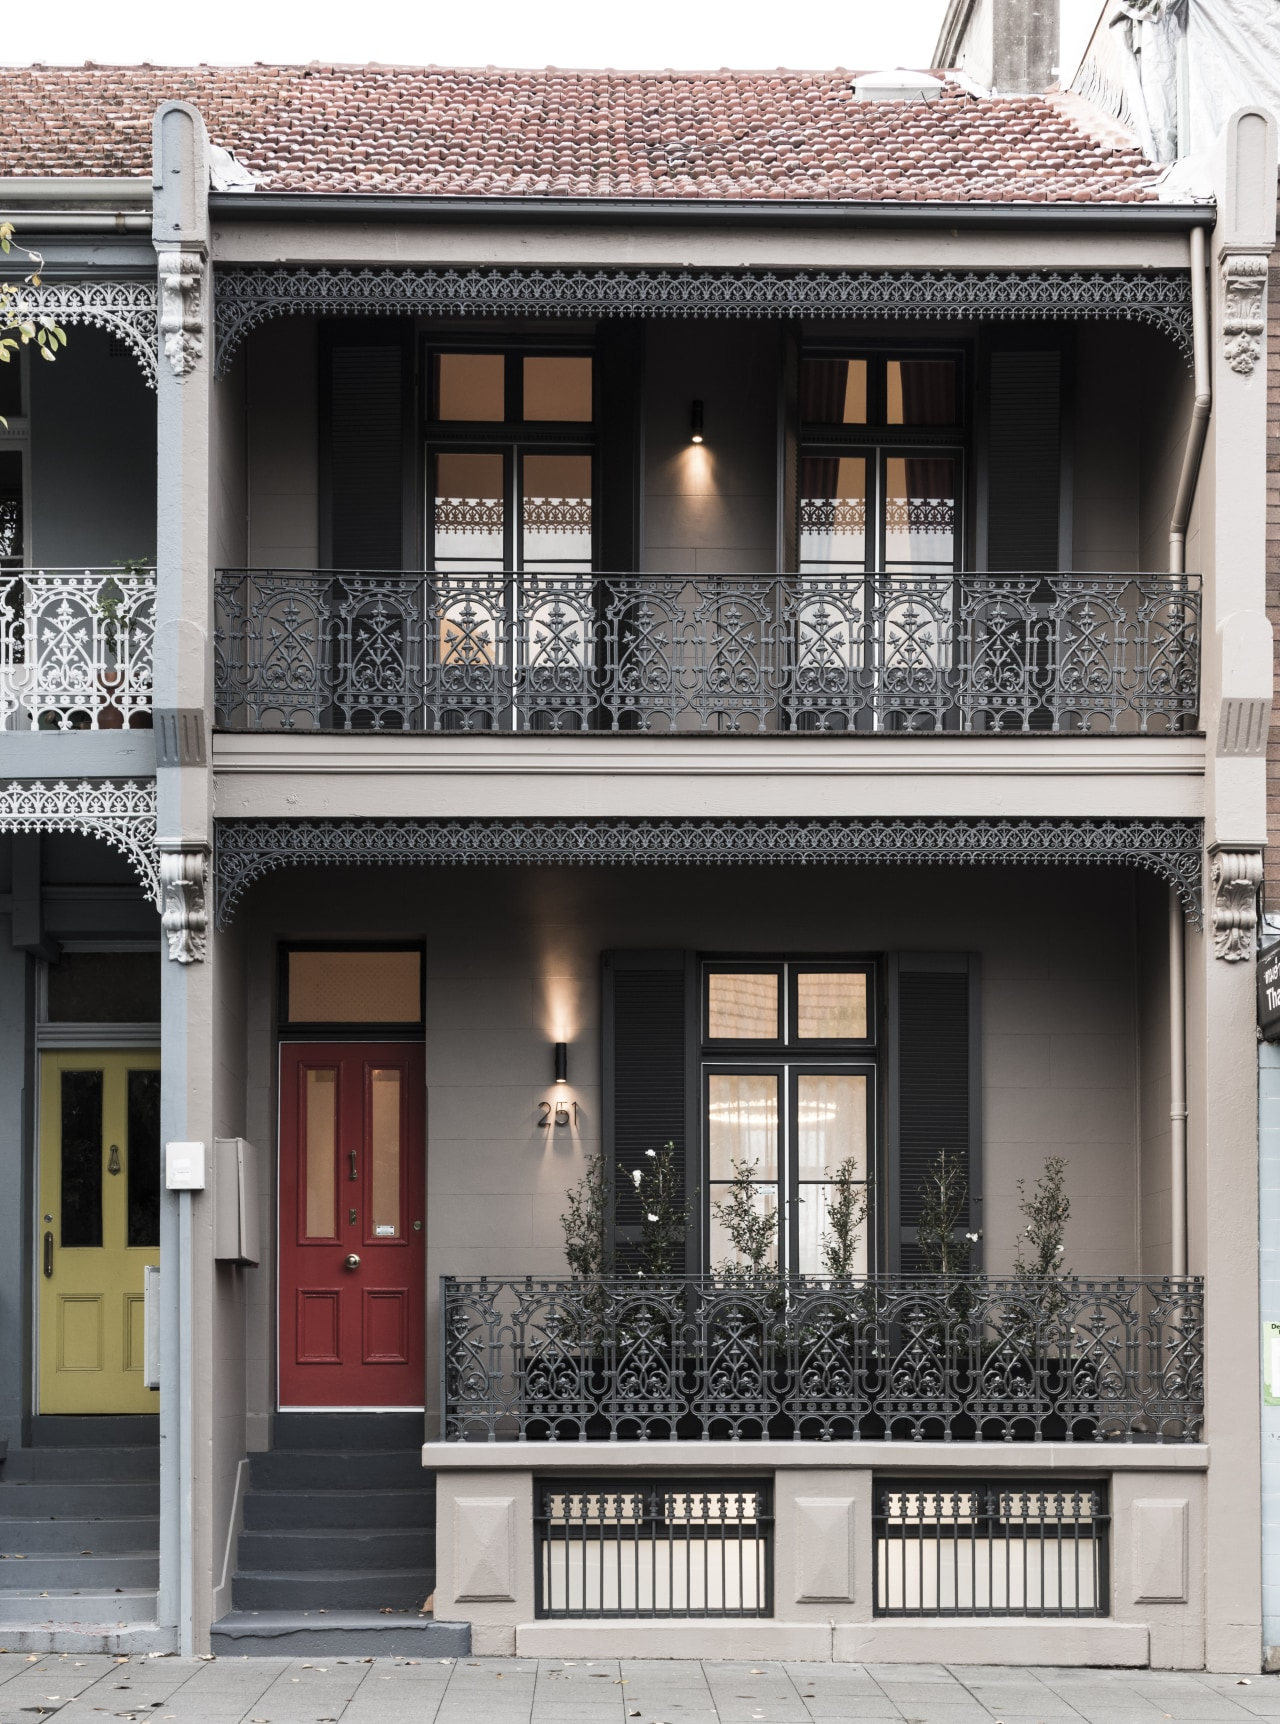 The freshly restored, elegant facade on this house architecture, balcony, building, door, facade, home, house, neighbourhood, property, real estate, residential area, window, black, white